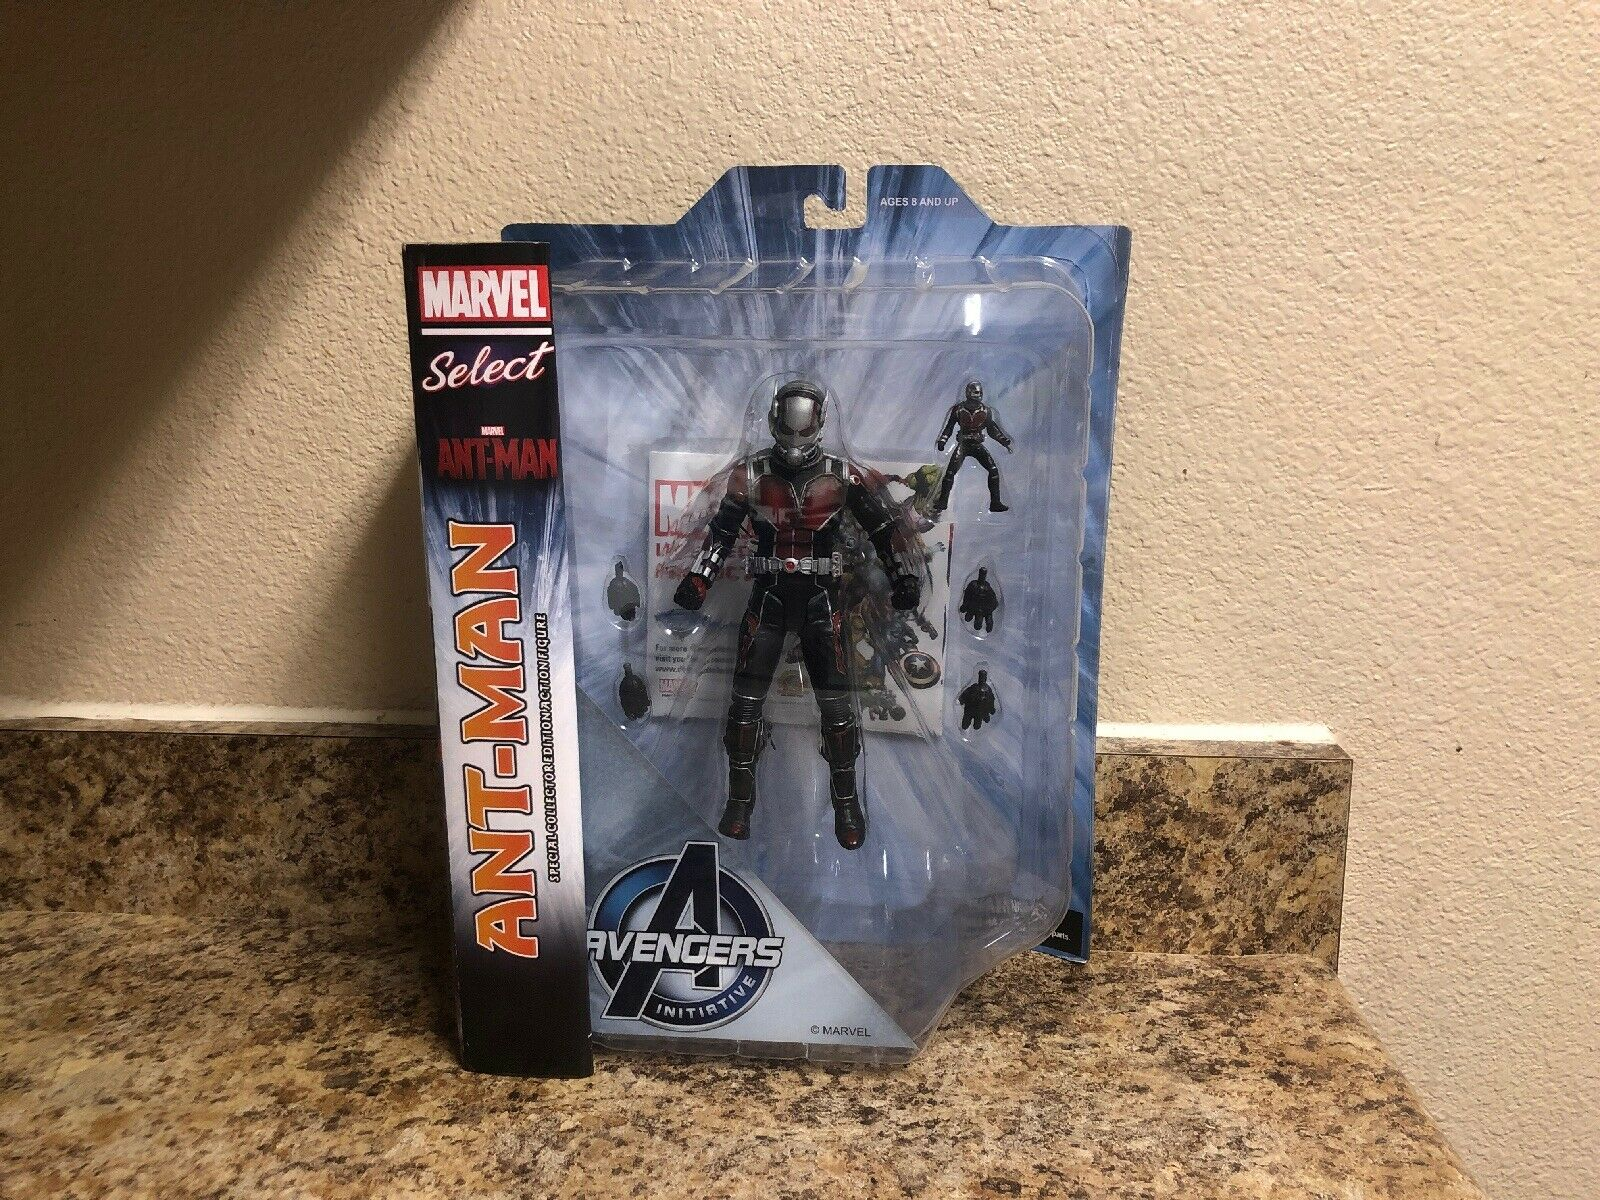 2015 DIAMOND MARVEL SELECT ANT-MAN COLLECTOR EDITION ACTION FIGURE AVENGERS AVENGERS AVENGERS 41b903